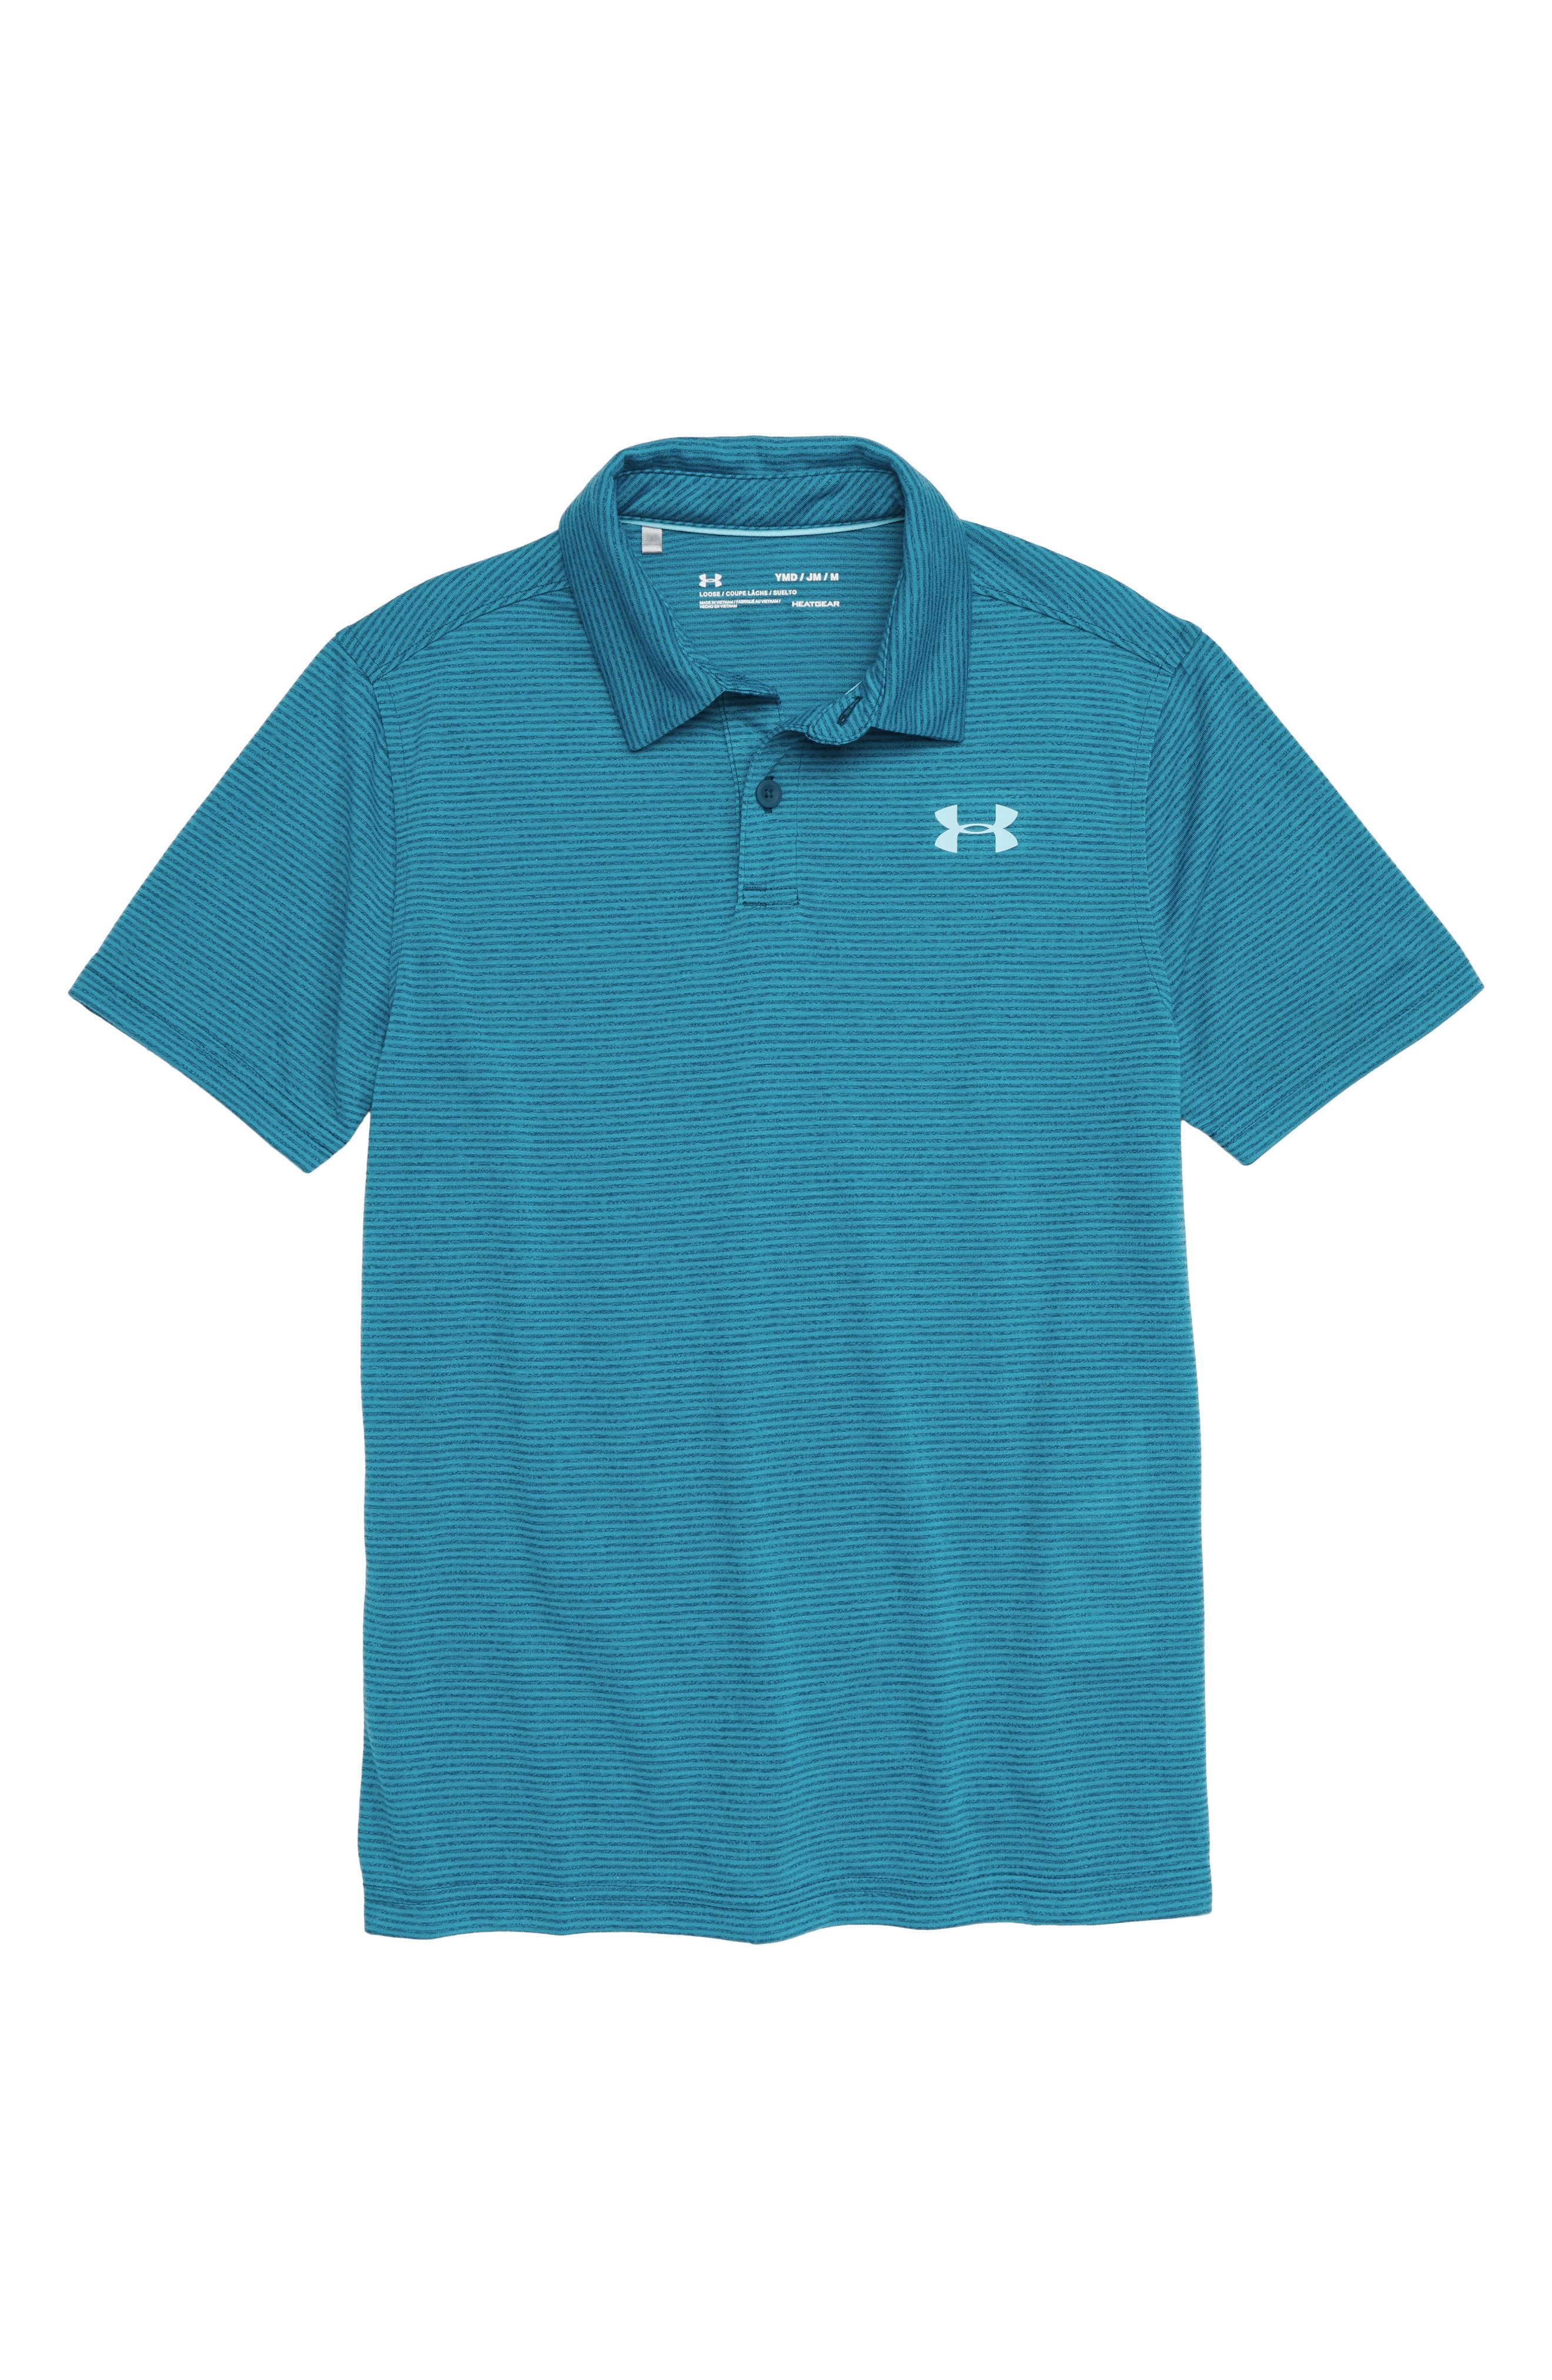 Threadborne Polo,                         Main,                         color, Techno Teal/ Venetian Blue